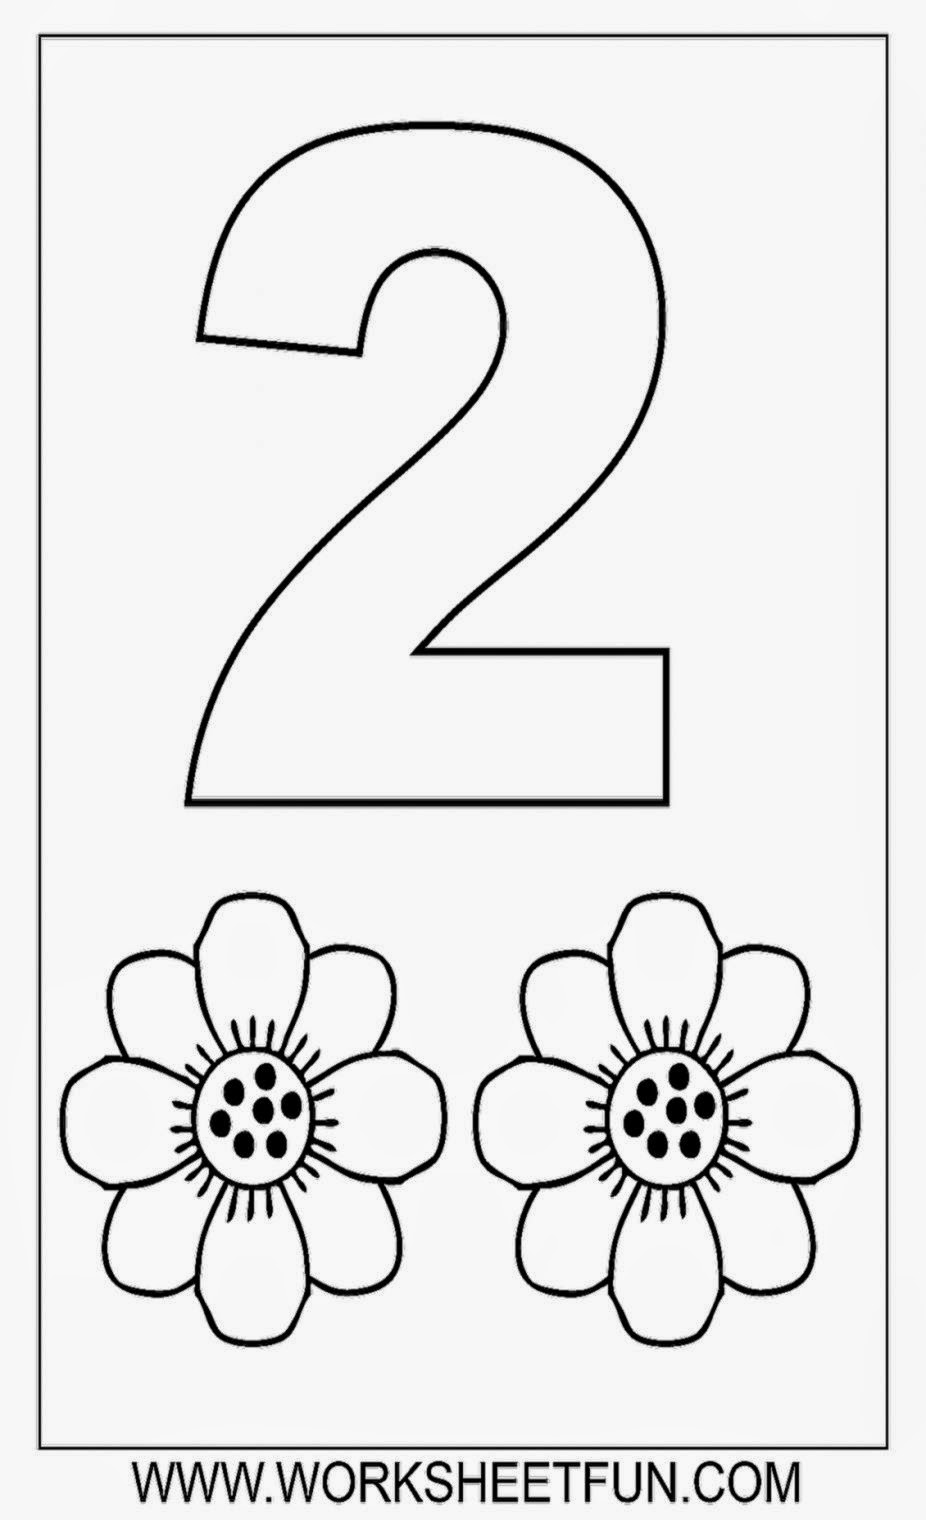 Printable Color By Number Sheets Free Coloring Sheet Free Printable Number Coloring Pages